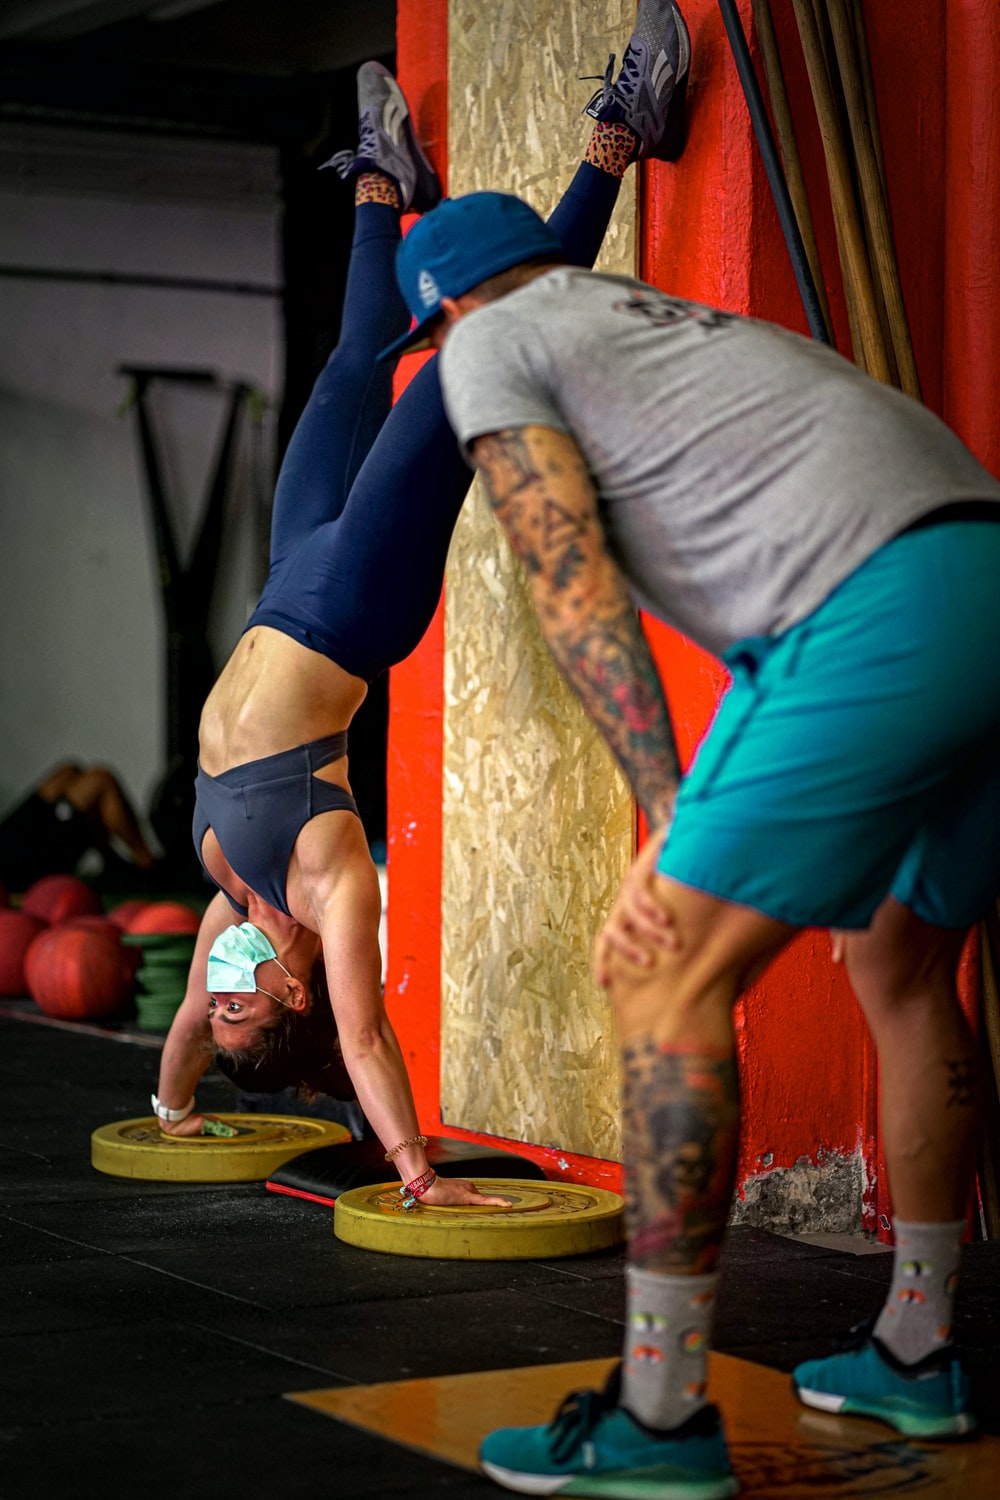 man in gray shirt and blue shorts doing yoga